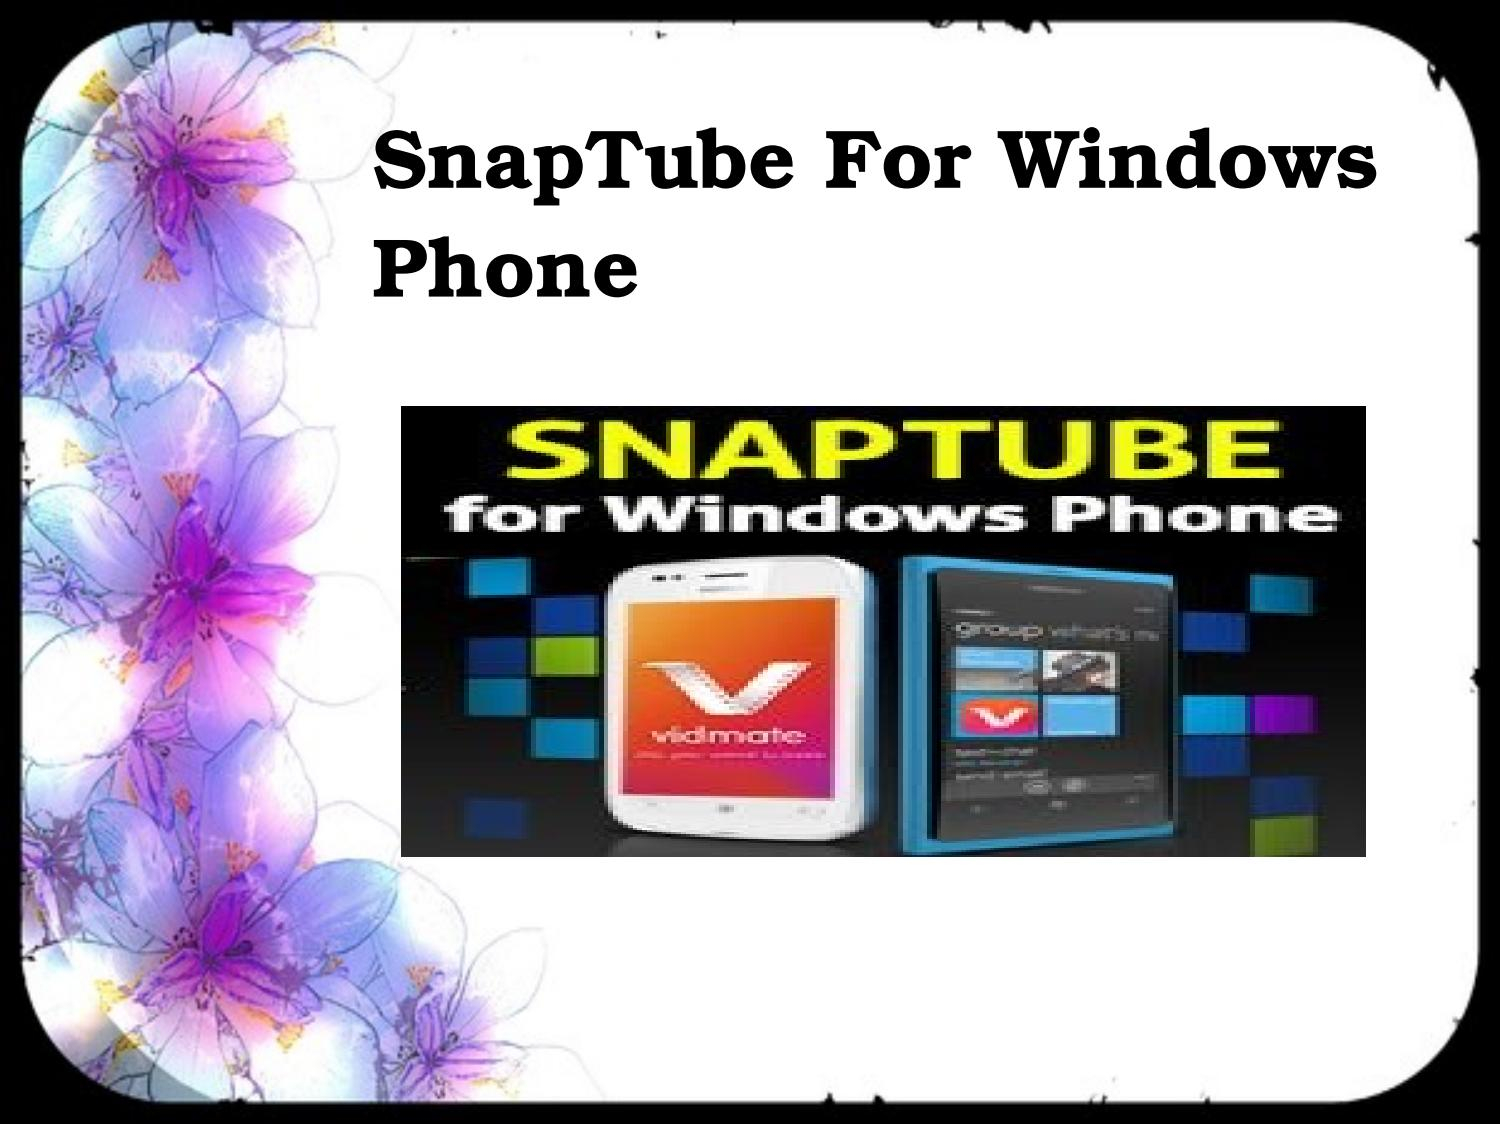 Snaptube for windows phone by Snaptube Apk Download - issuu